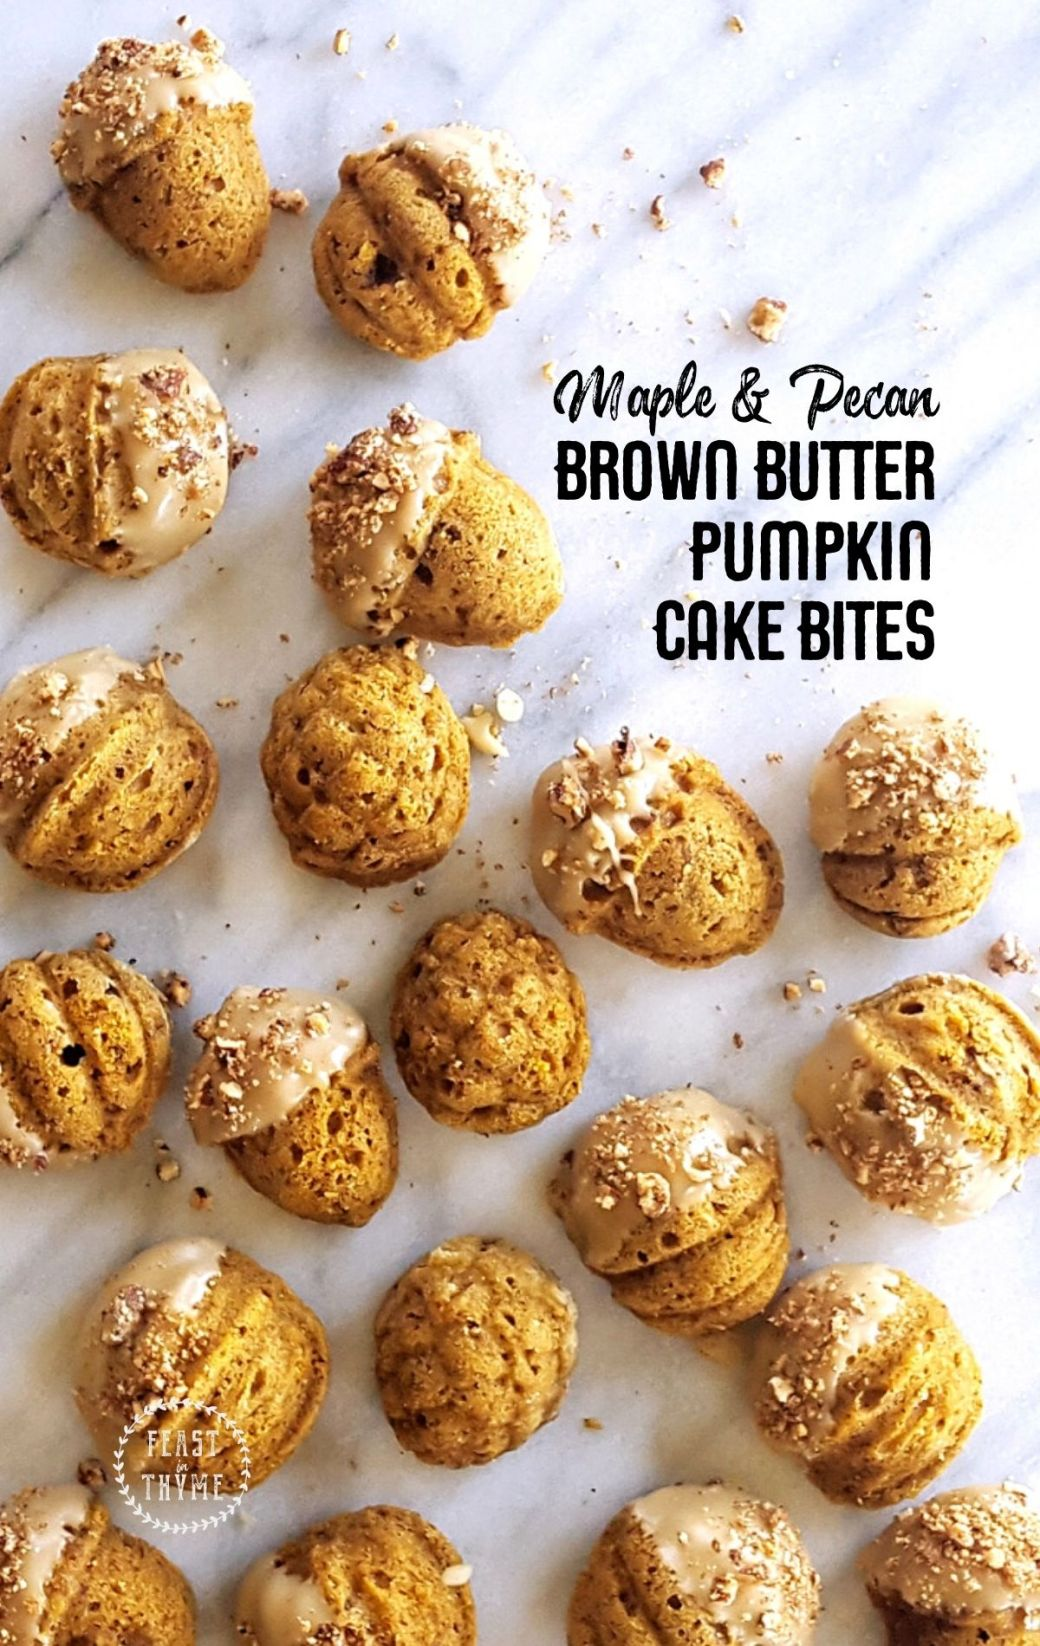 Brown Butter Pumpkin Cake Bites with Maple Glaze & Candied Pecans